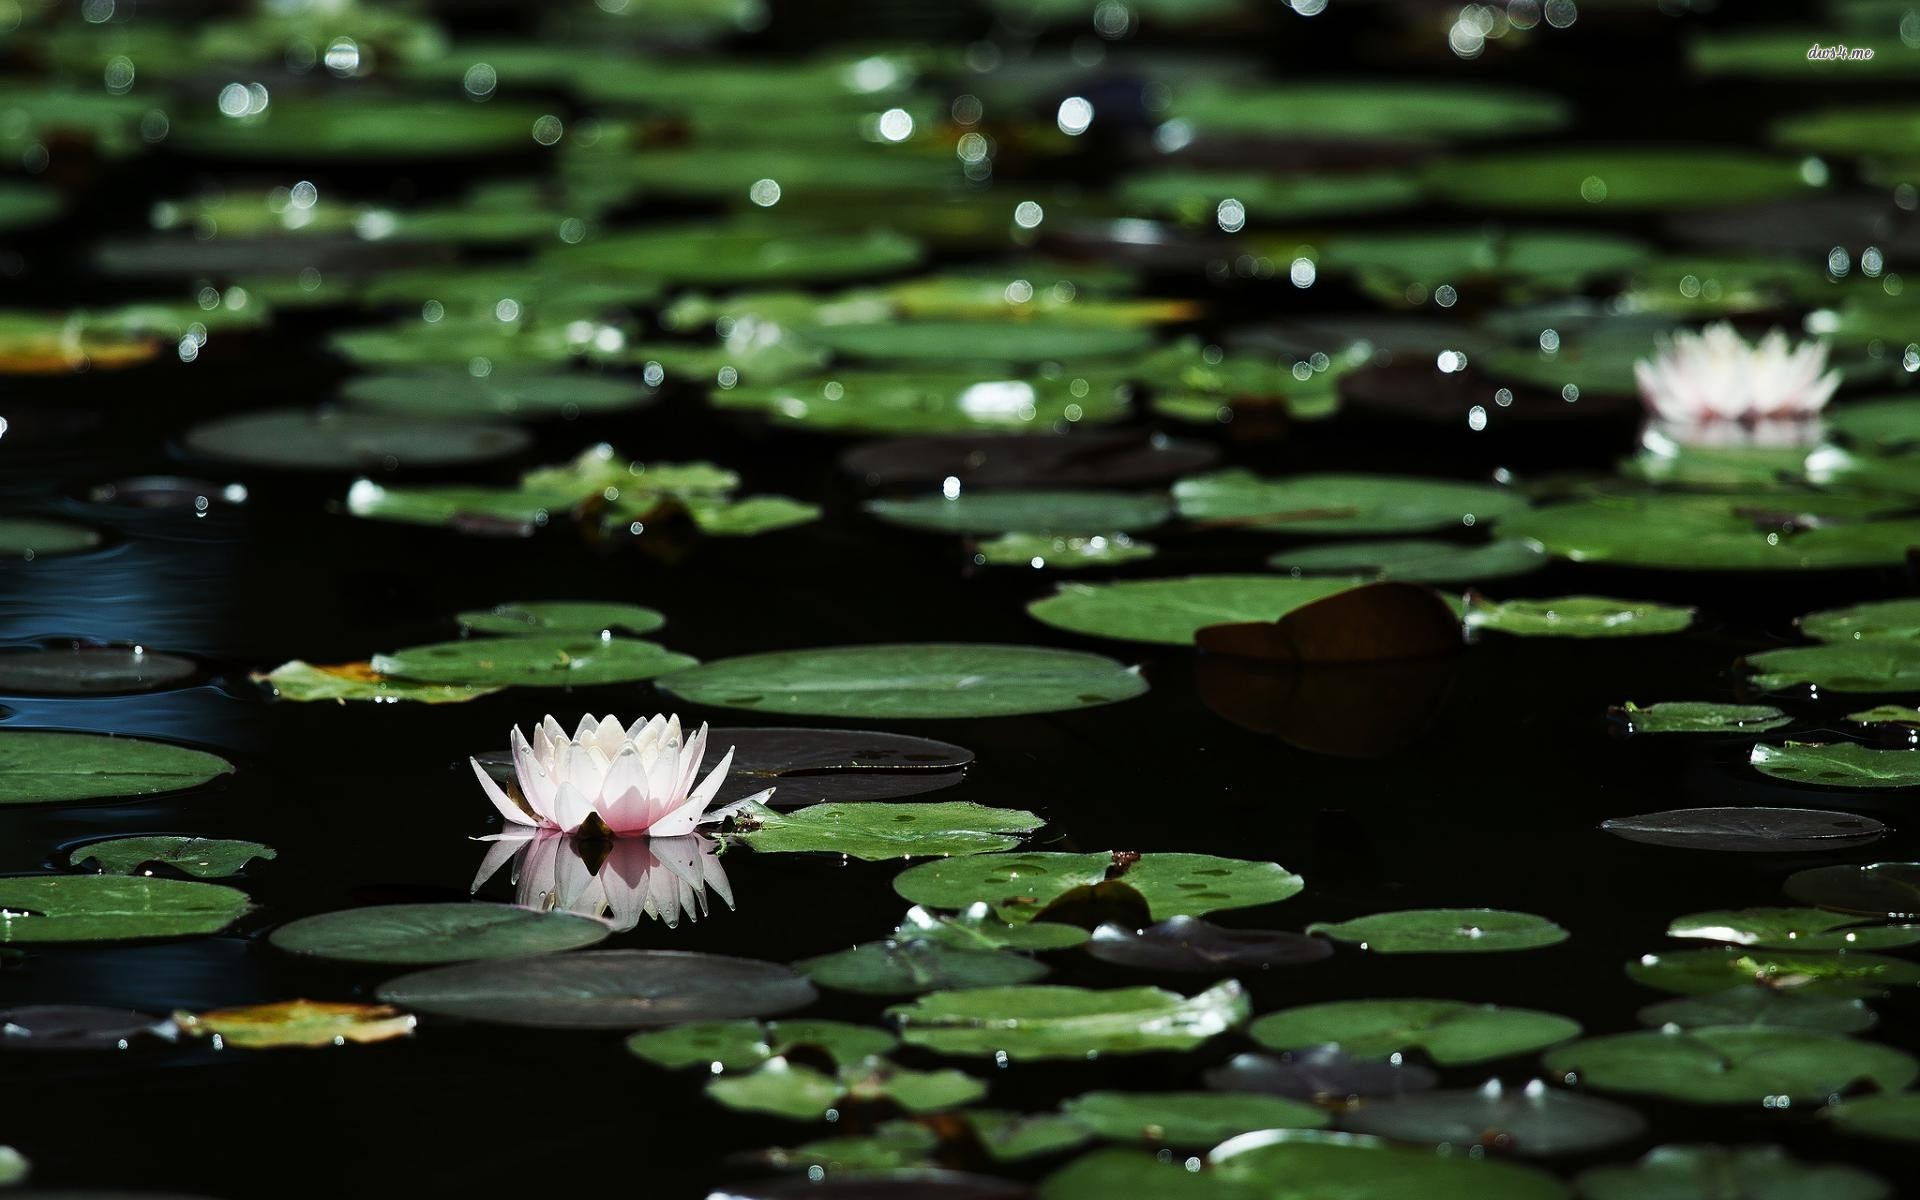 Cell Phone Wallpaper Quotes Download Water Lilies Wallpaper Gallery